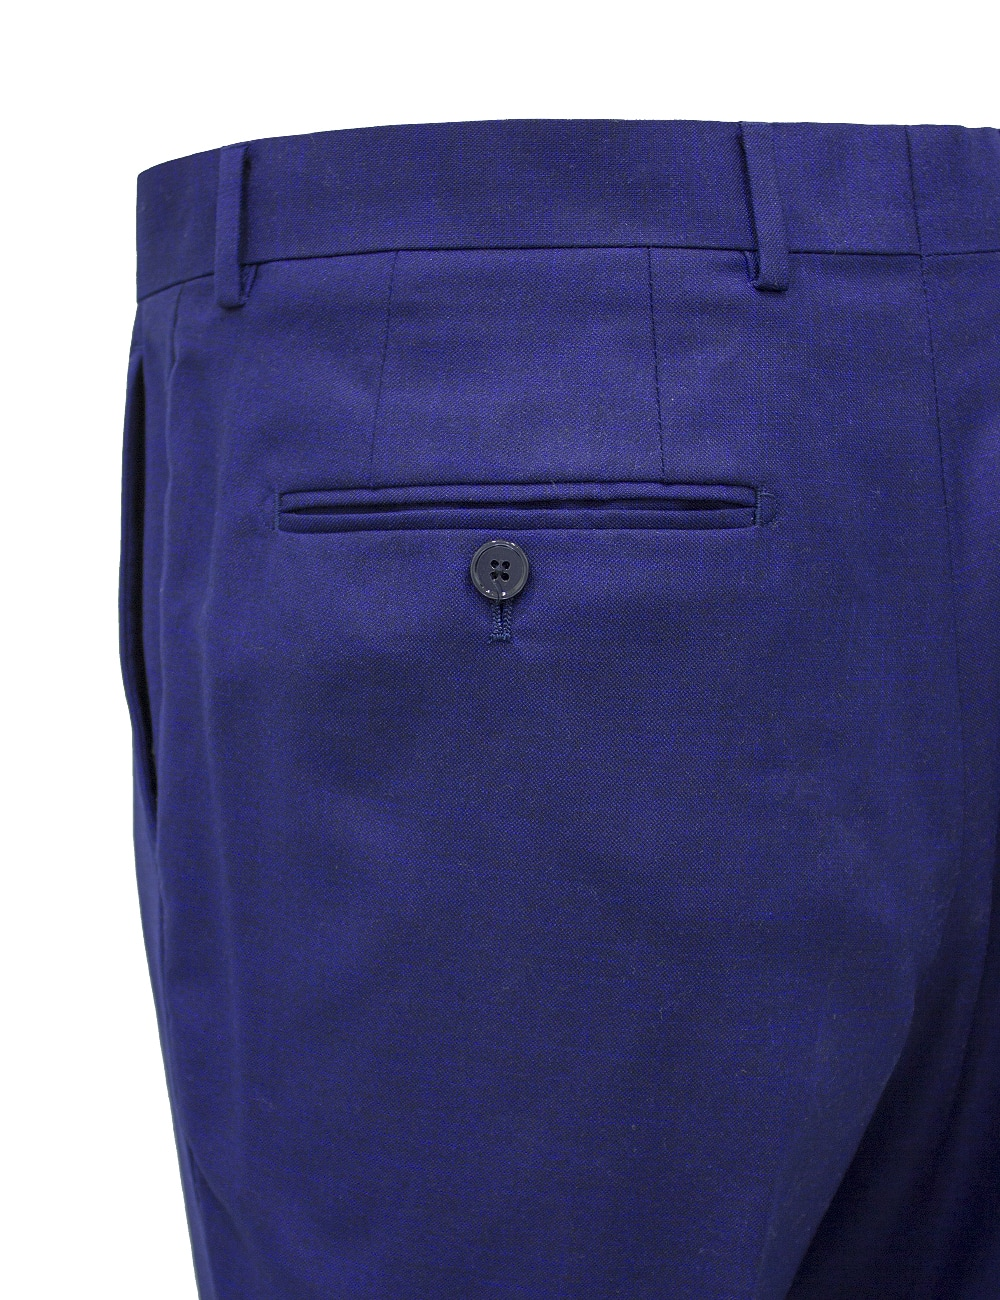 Slim / Tailored Fit Navy Mixed Suit Pants SP5.3-SS5.3